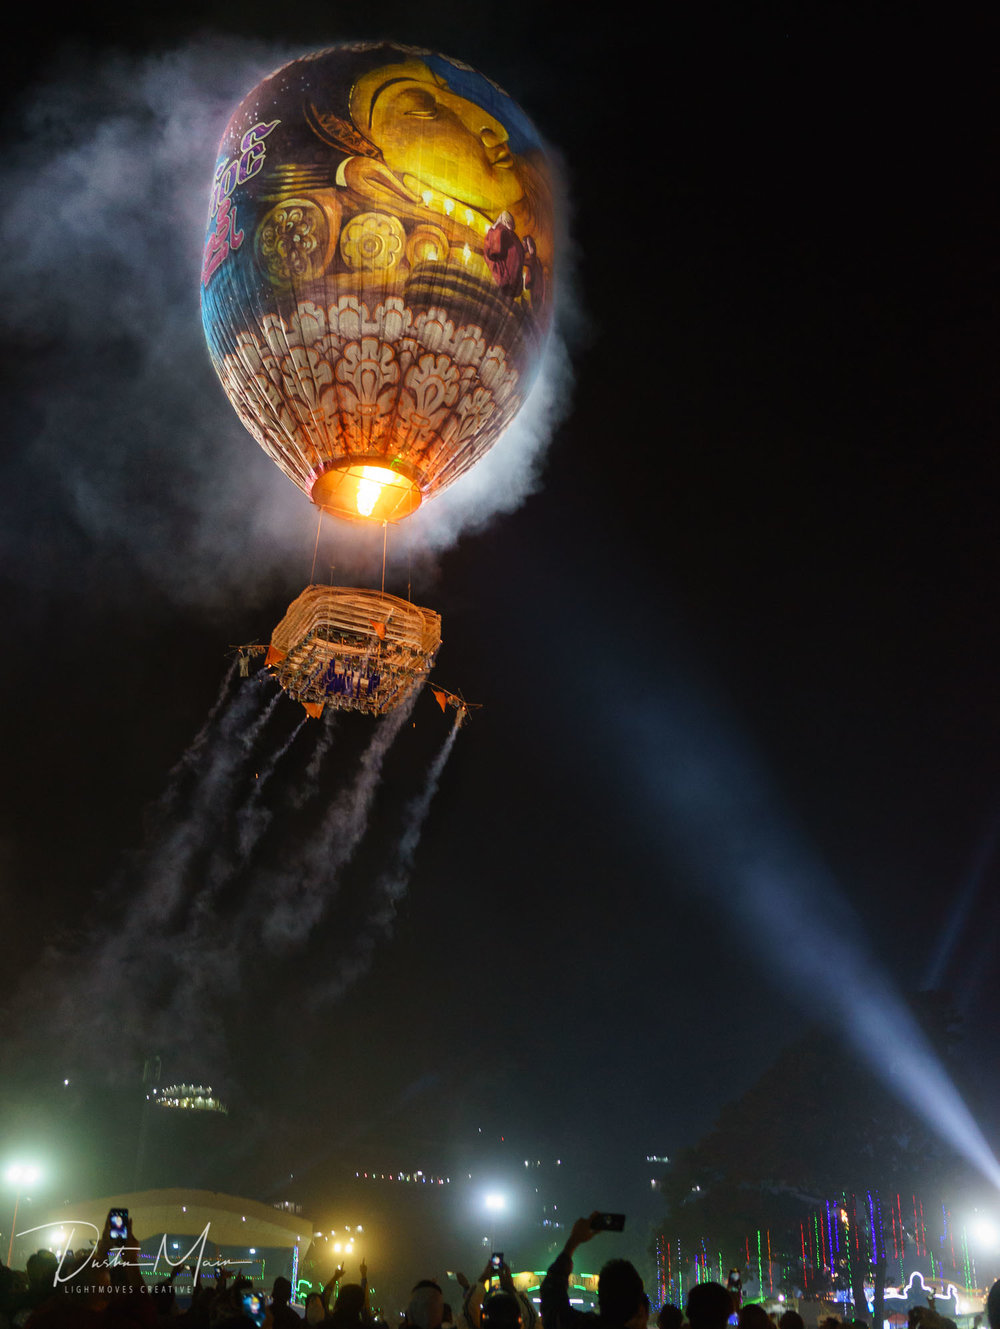 Nya Mee Gyi takes off at the Tazaungdaing Fire Balloon Festival  © Dustin Main 2015